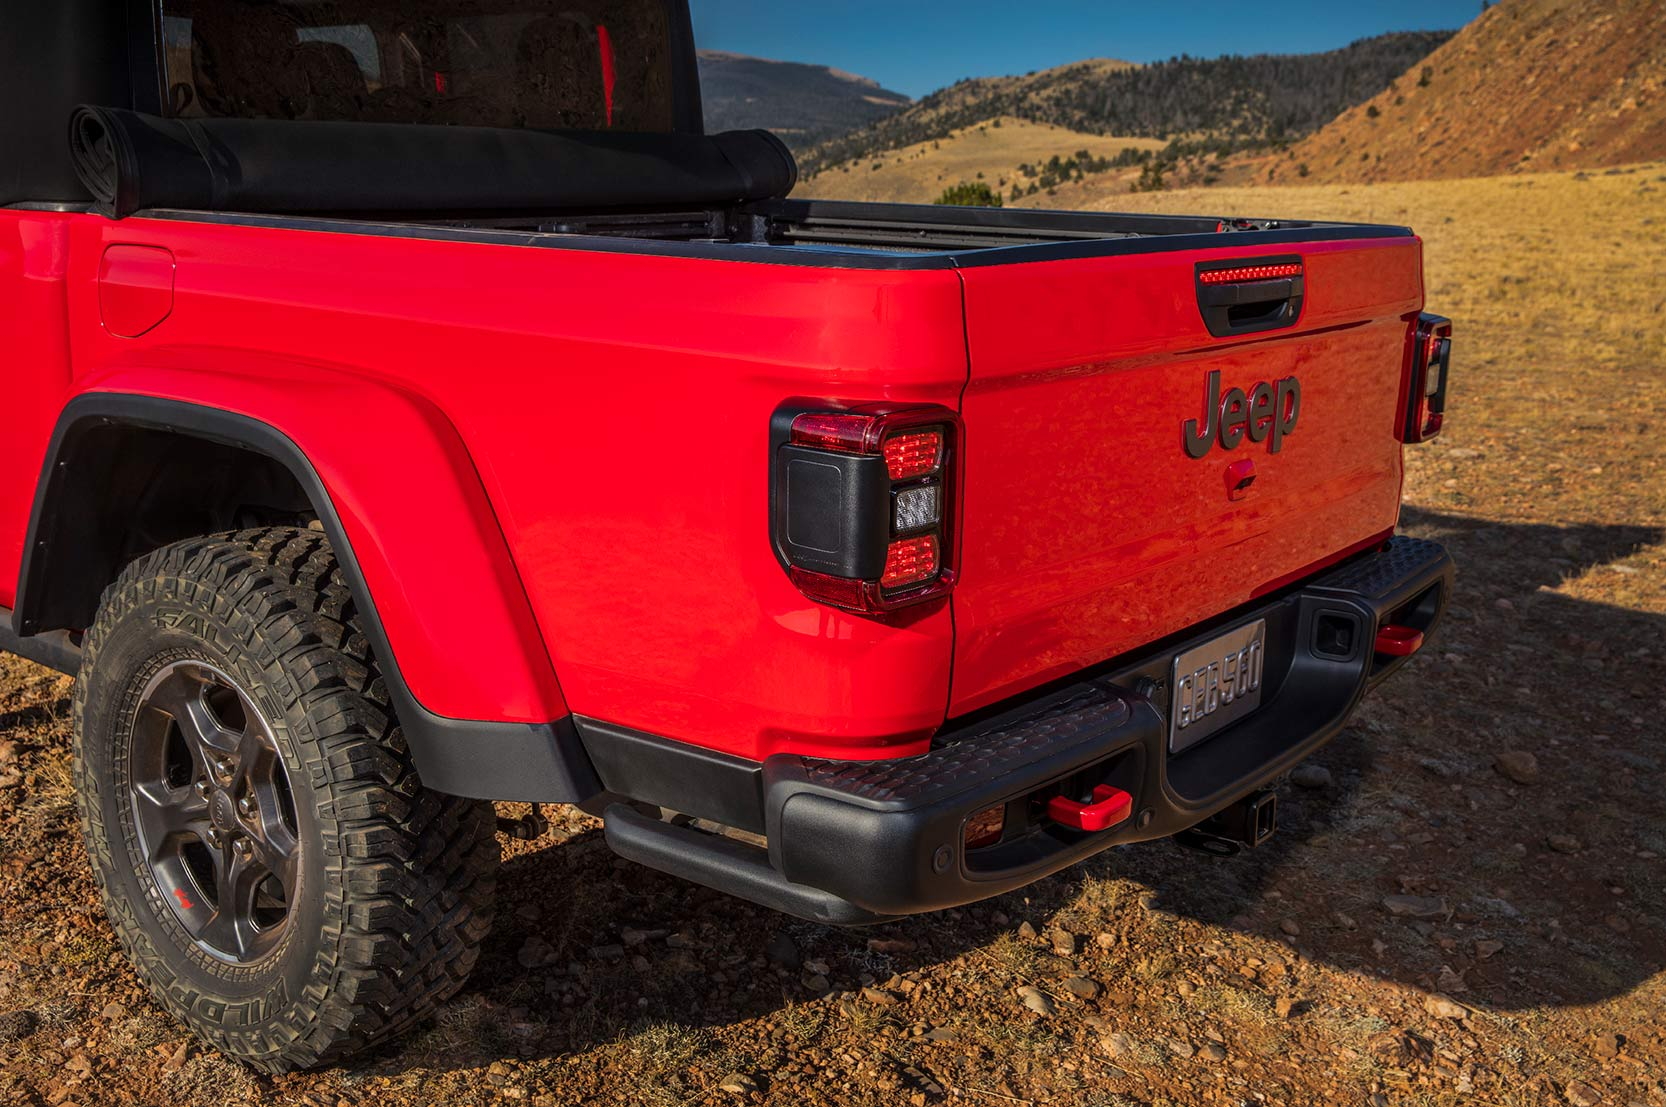 Exterieur_Jeep-Gladiator_96